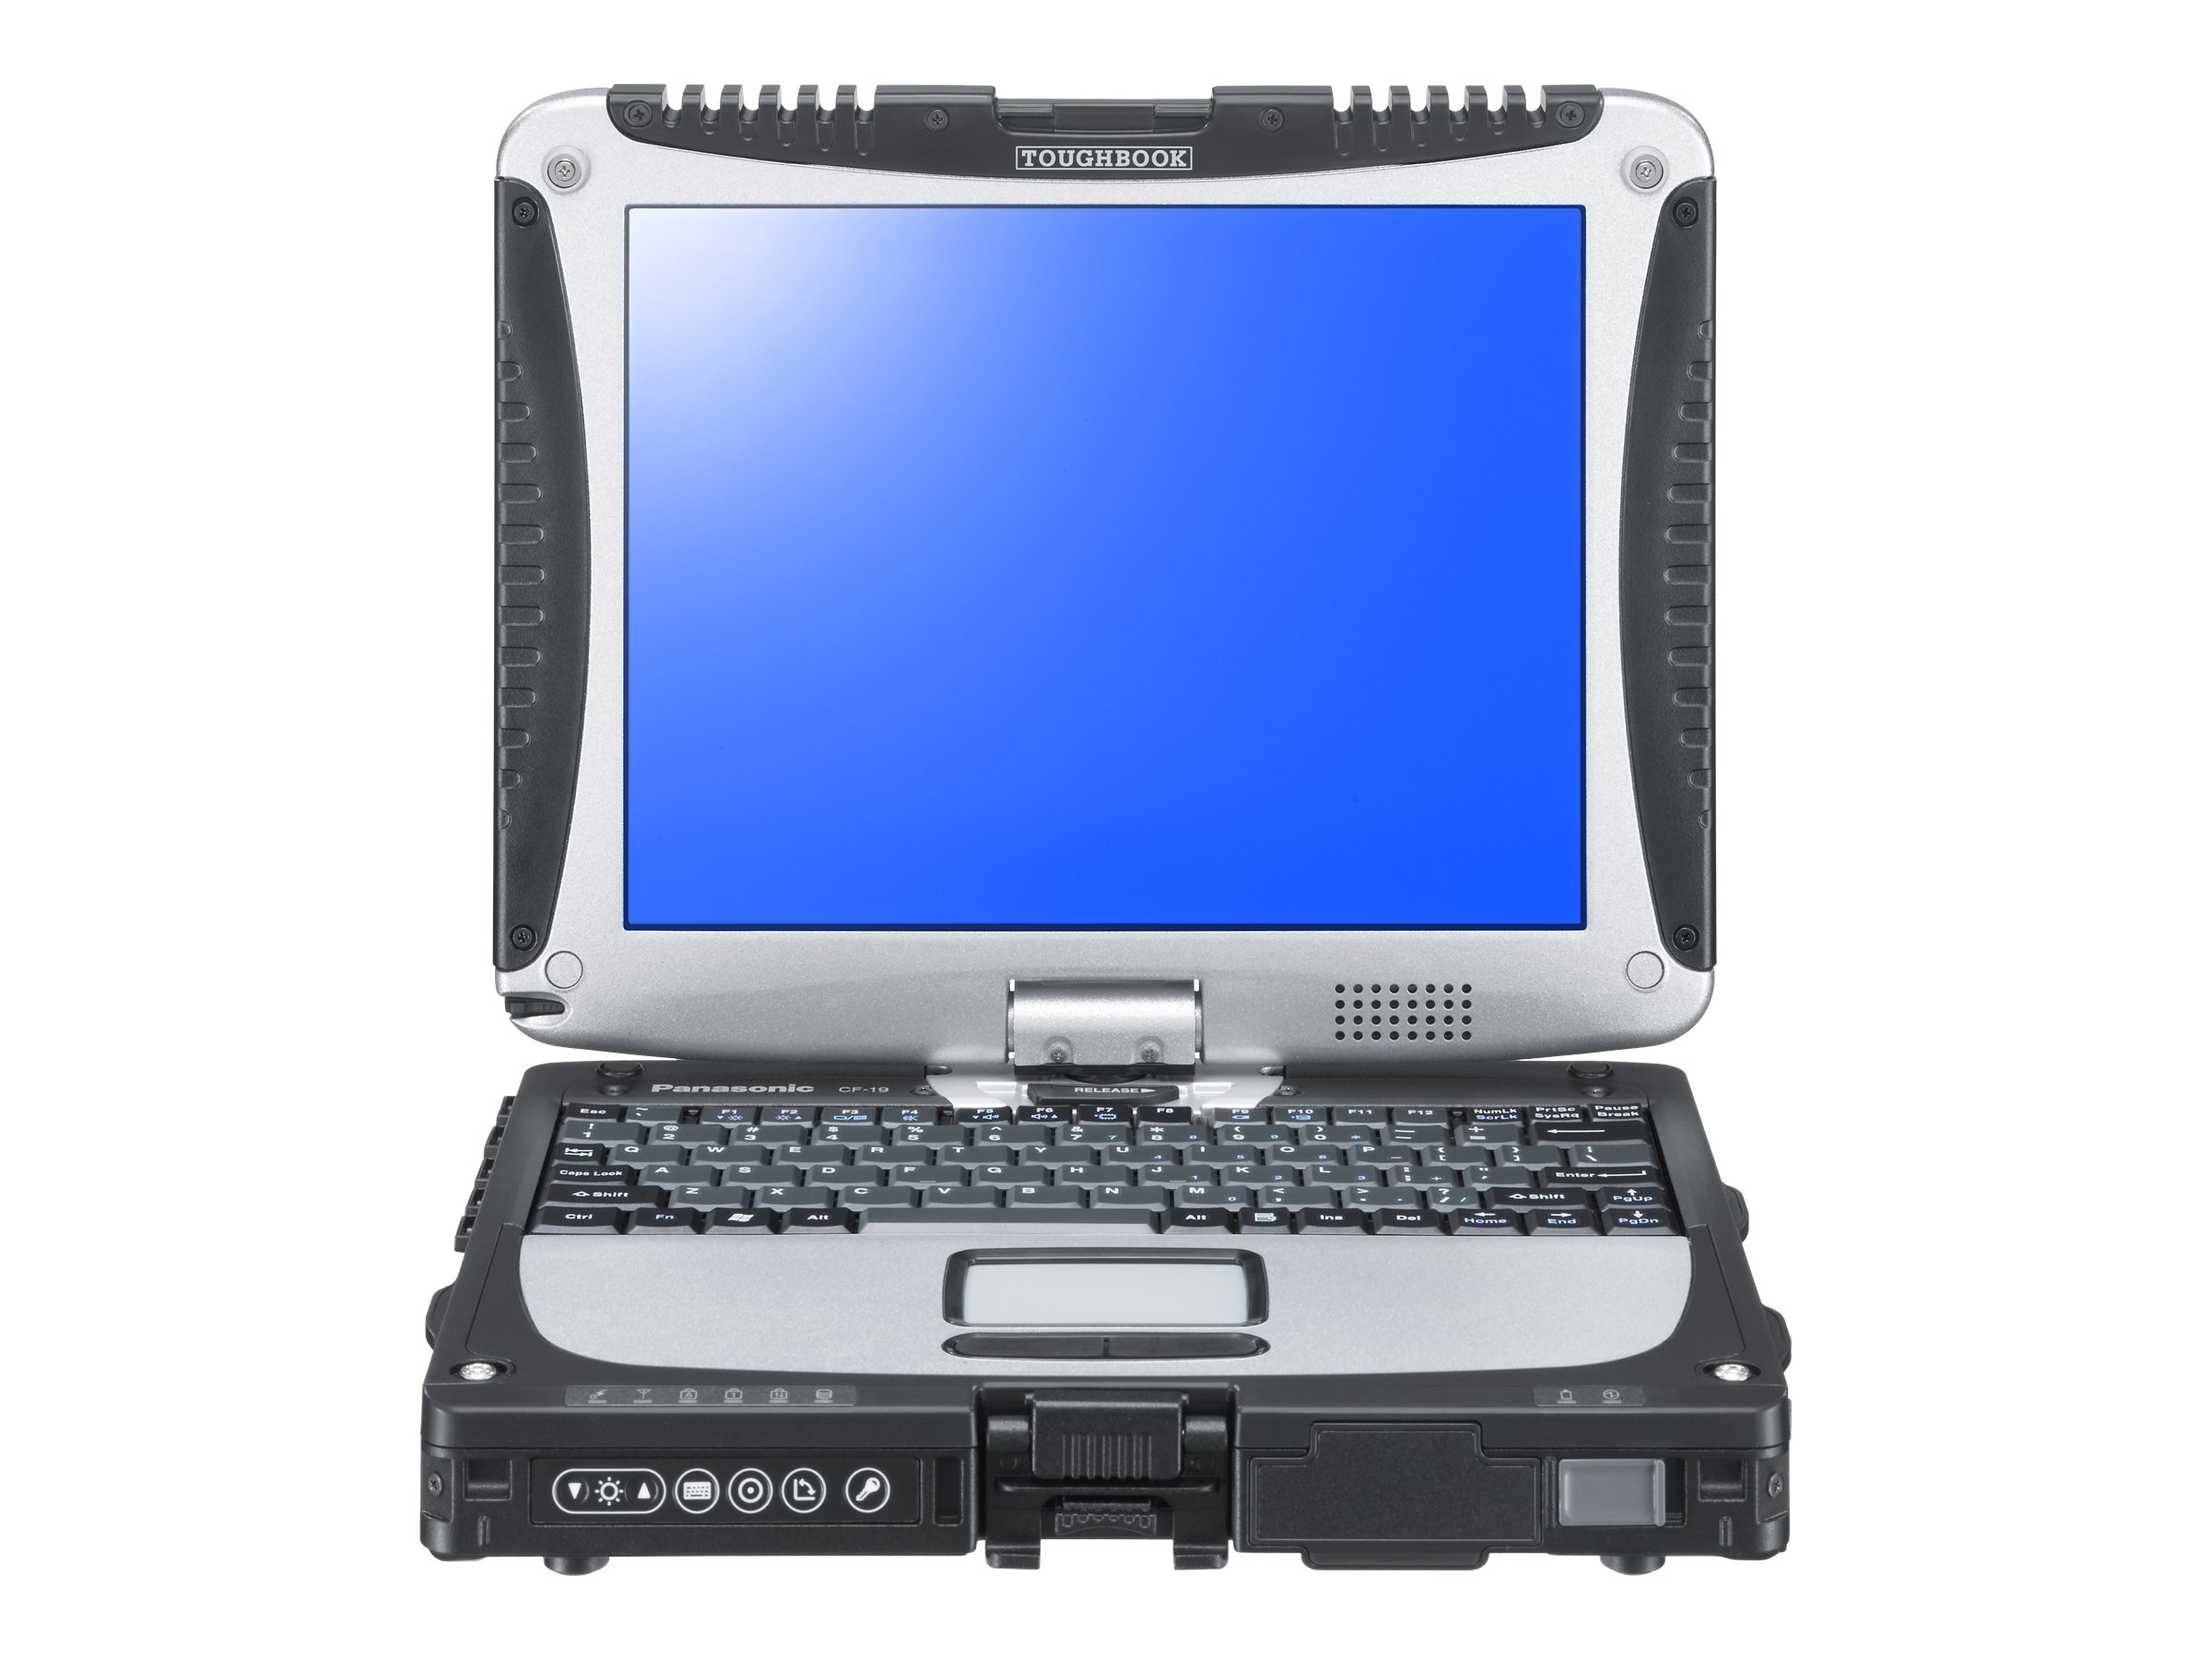 Panasonic Toughbook 19 vPro Core i5-3610ME 2.7GHz 500GB (7200RPM) 10.1 XGA MT W8.1P, CF-19ZE004BM